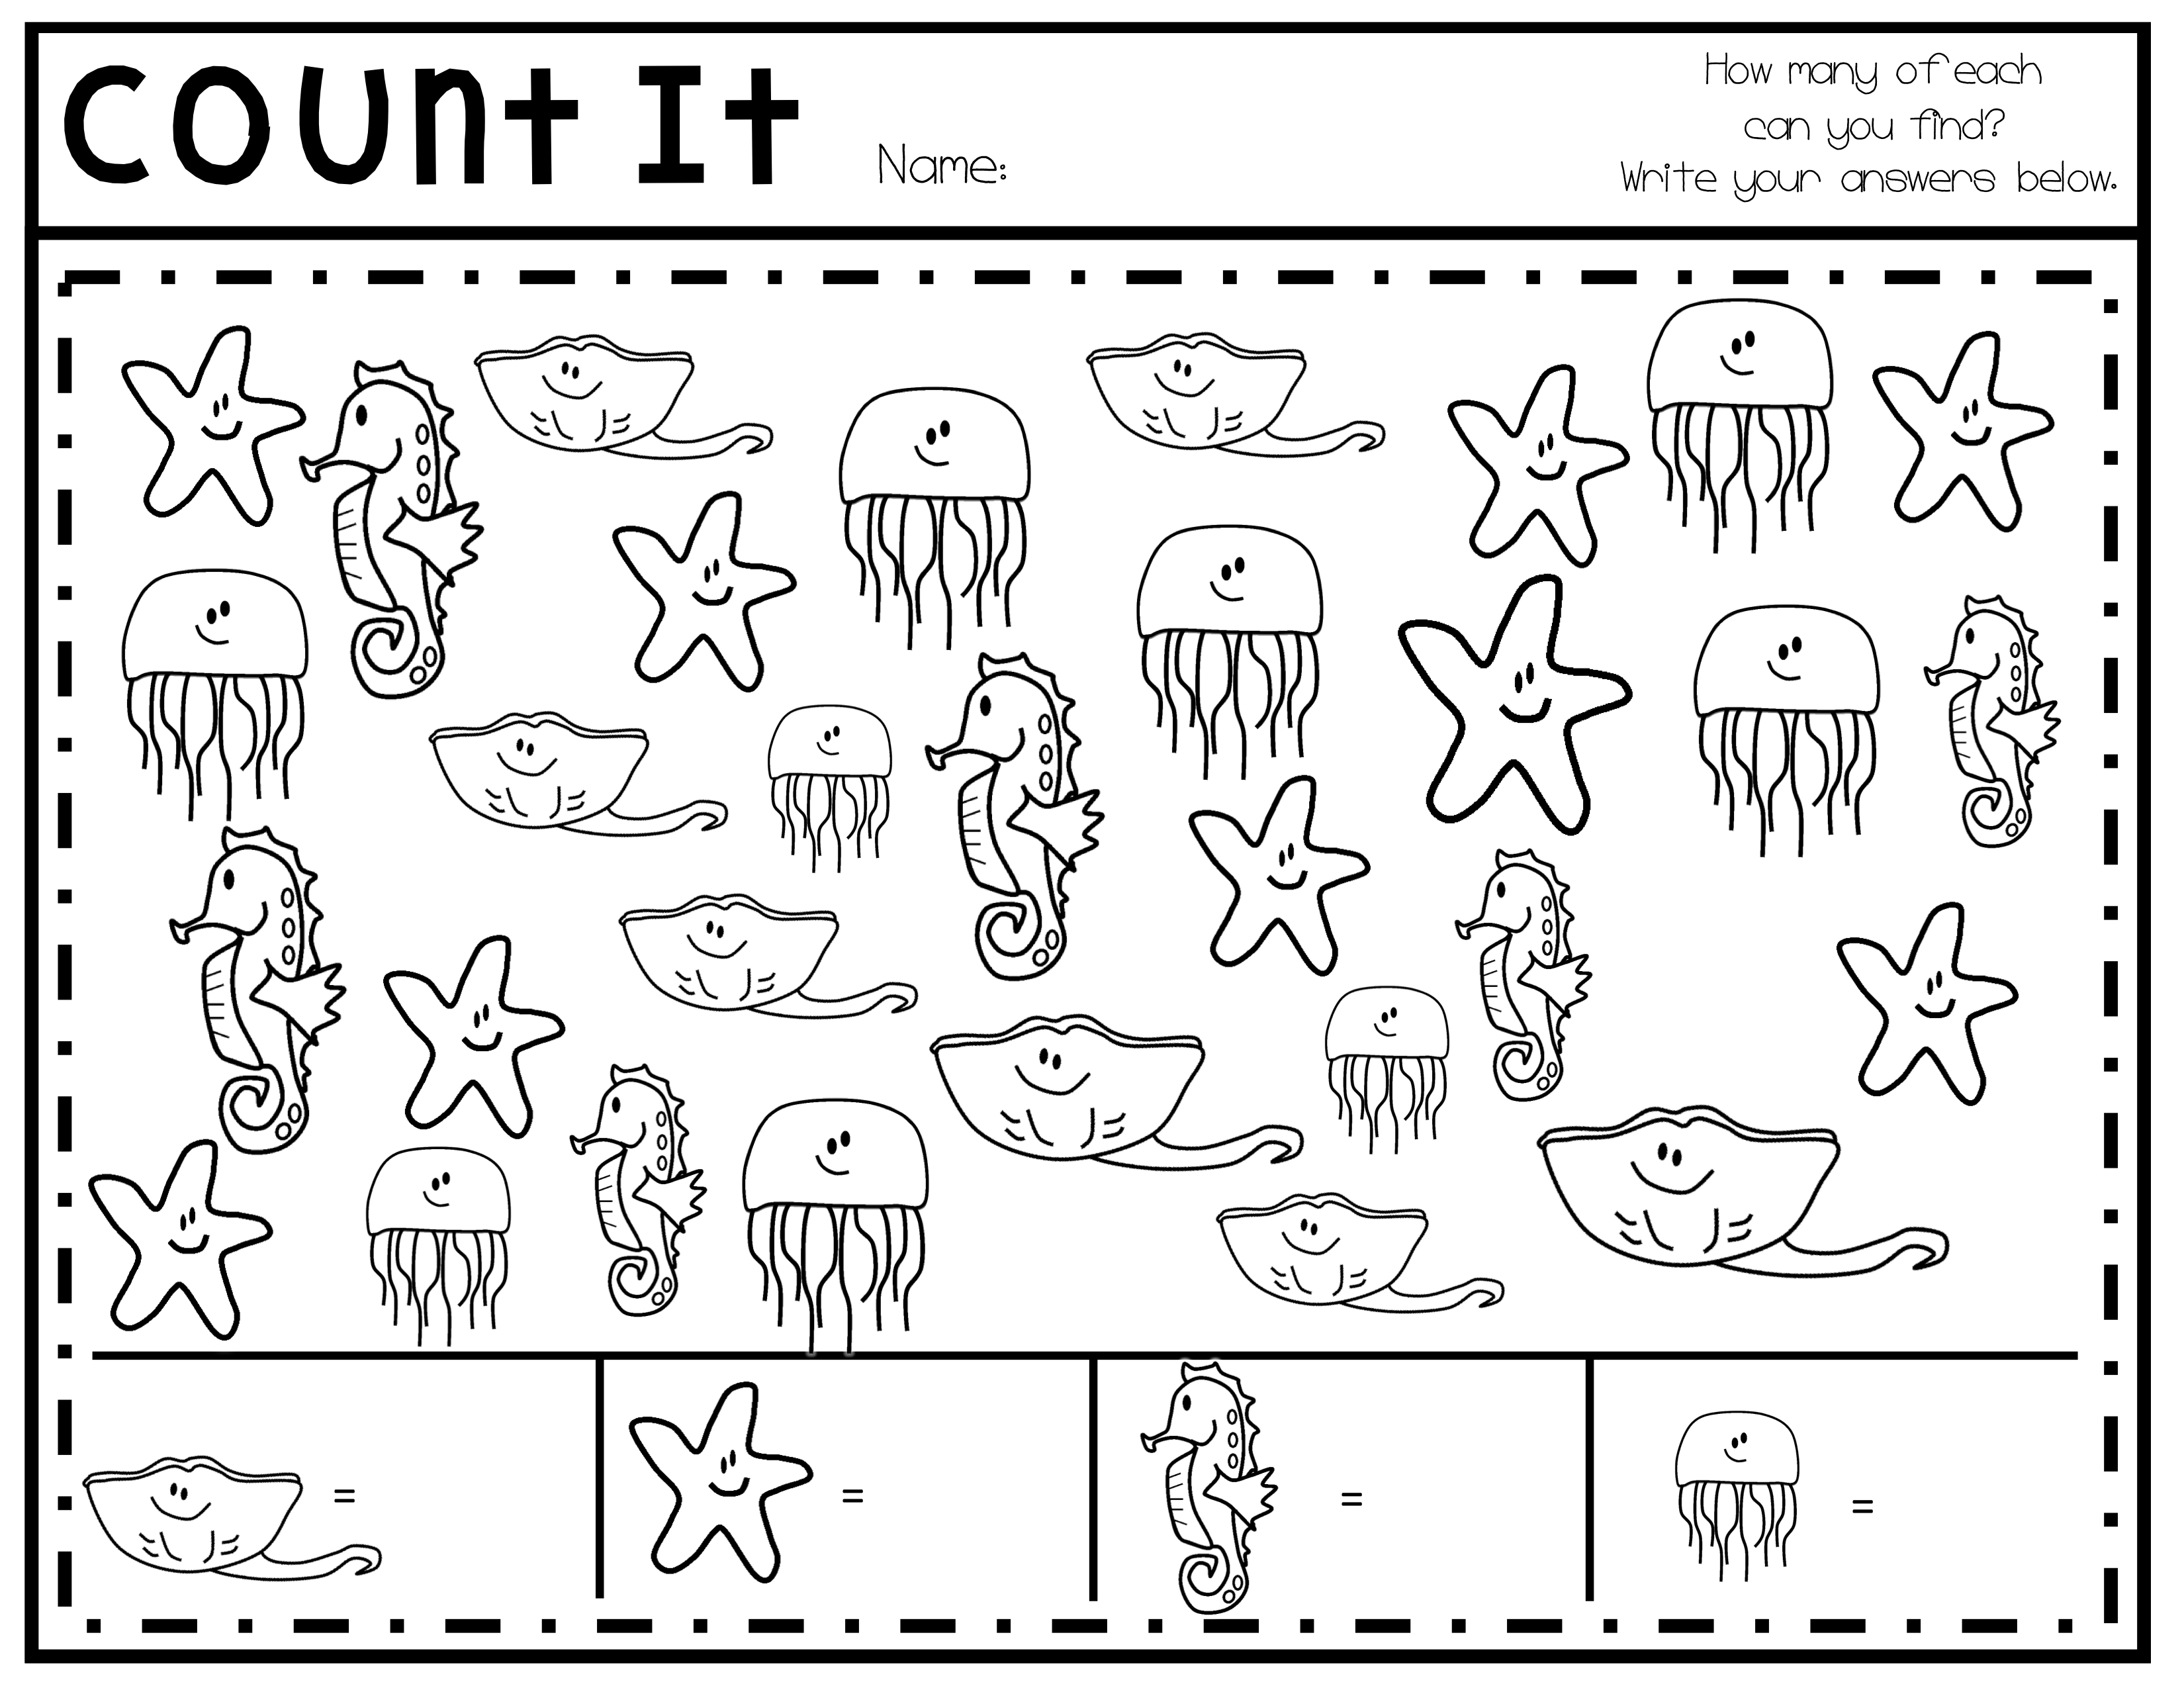 Count It Pack Math Lessons Math Worksheets Small Groups [ 2550 x 3300 Pixel ]